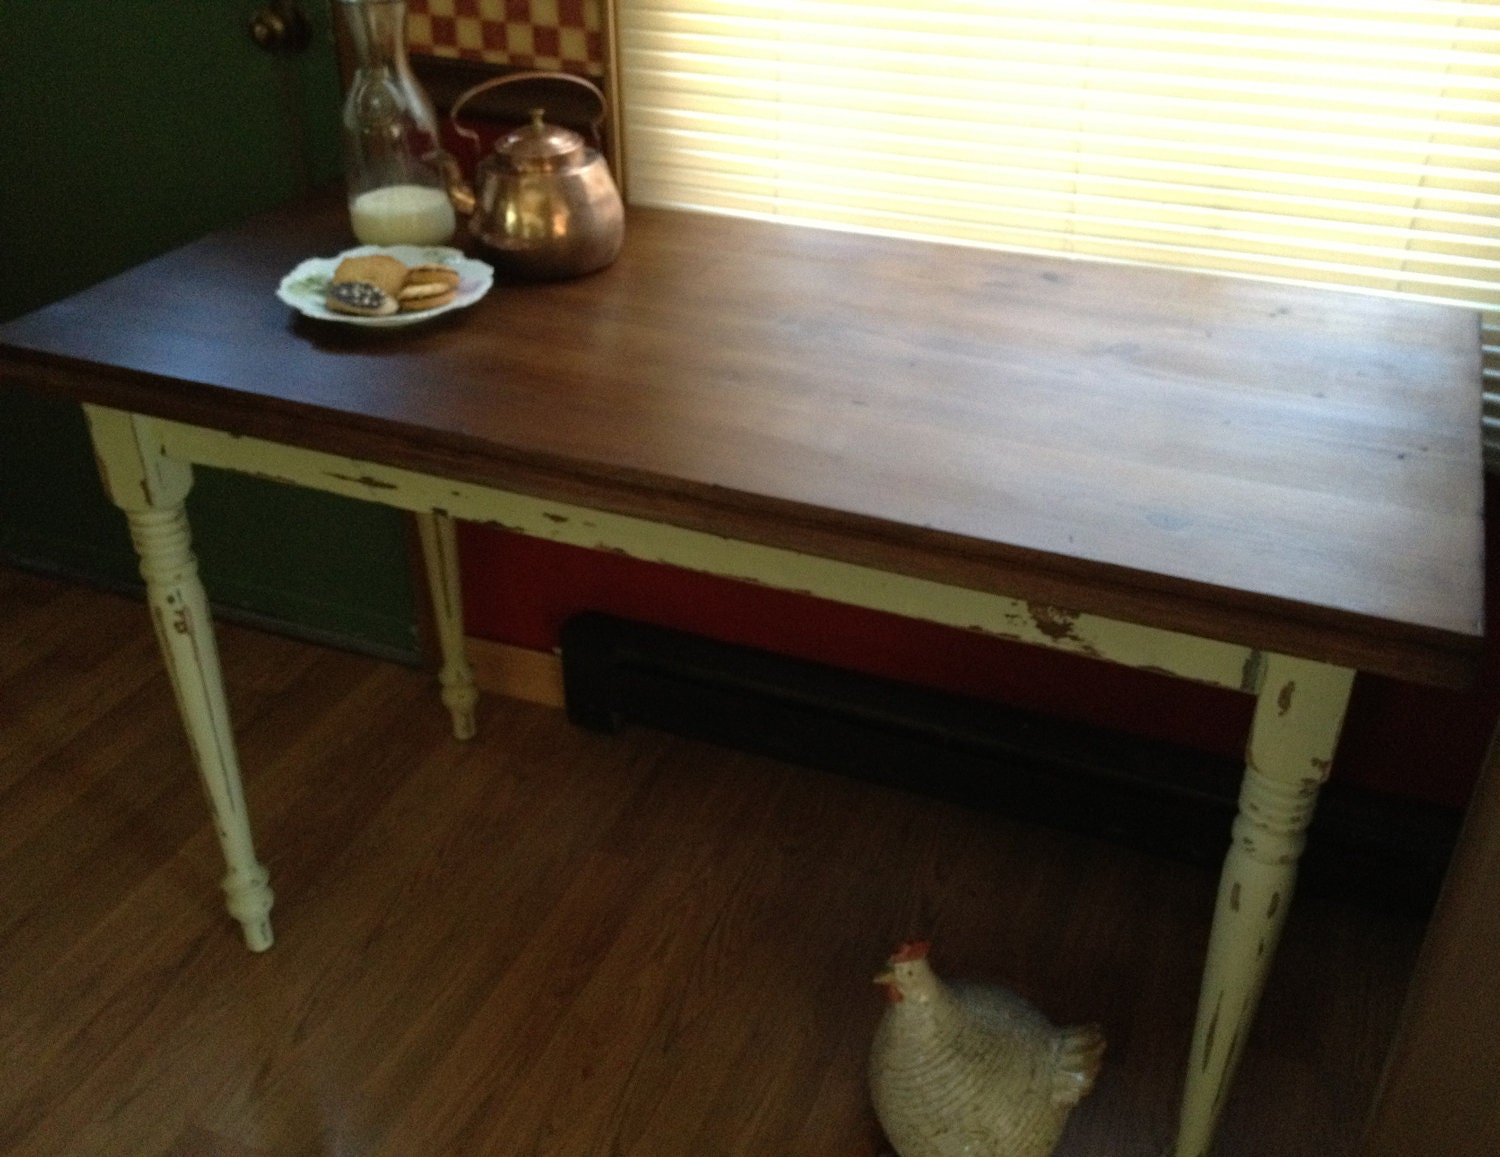 Small Rustic Kitchen Table: Rustic Urban Distressed Kitchen Table Or Writing Table